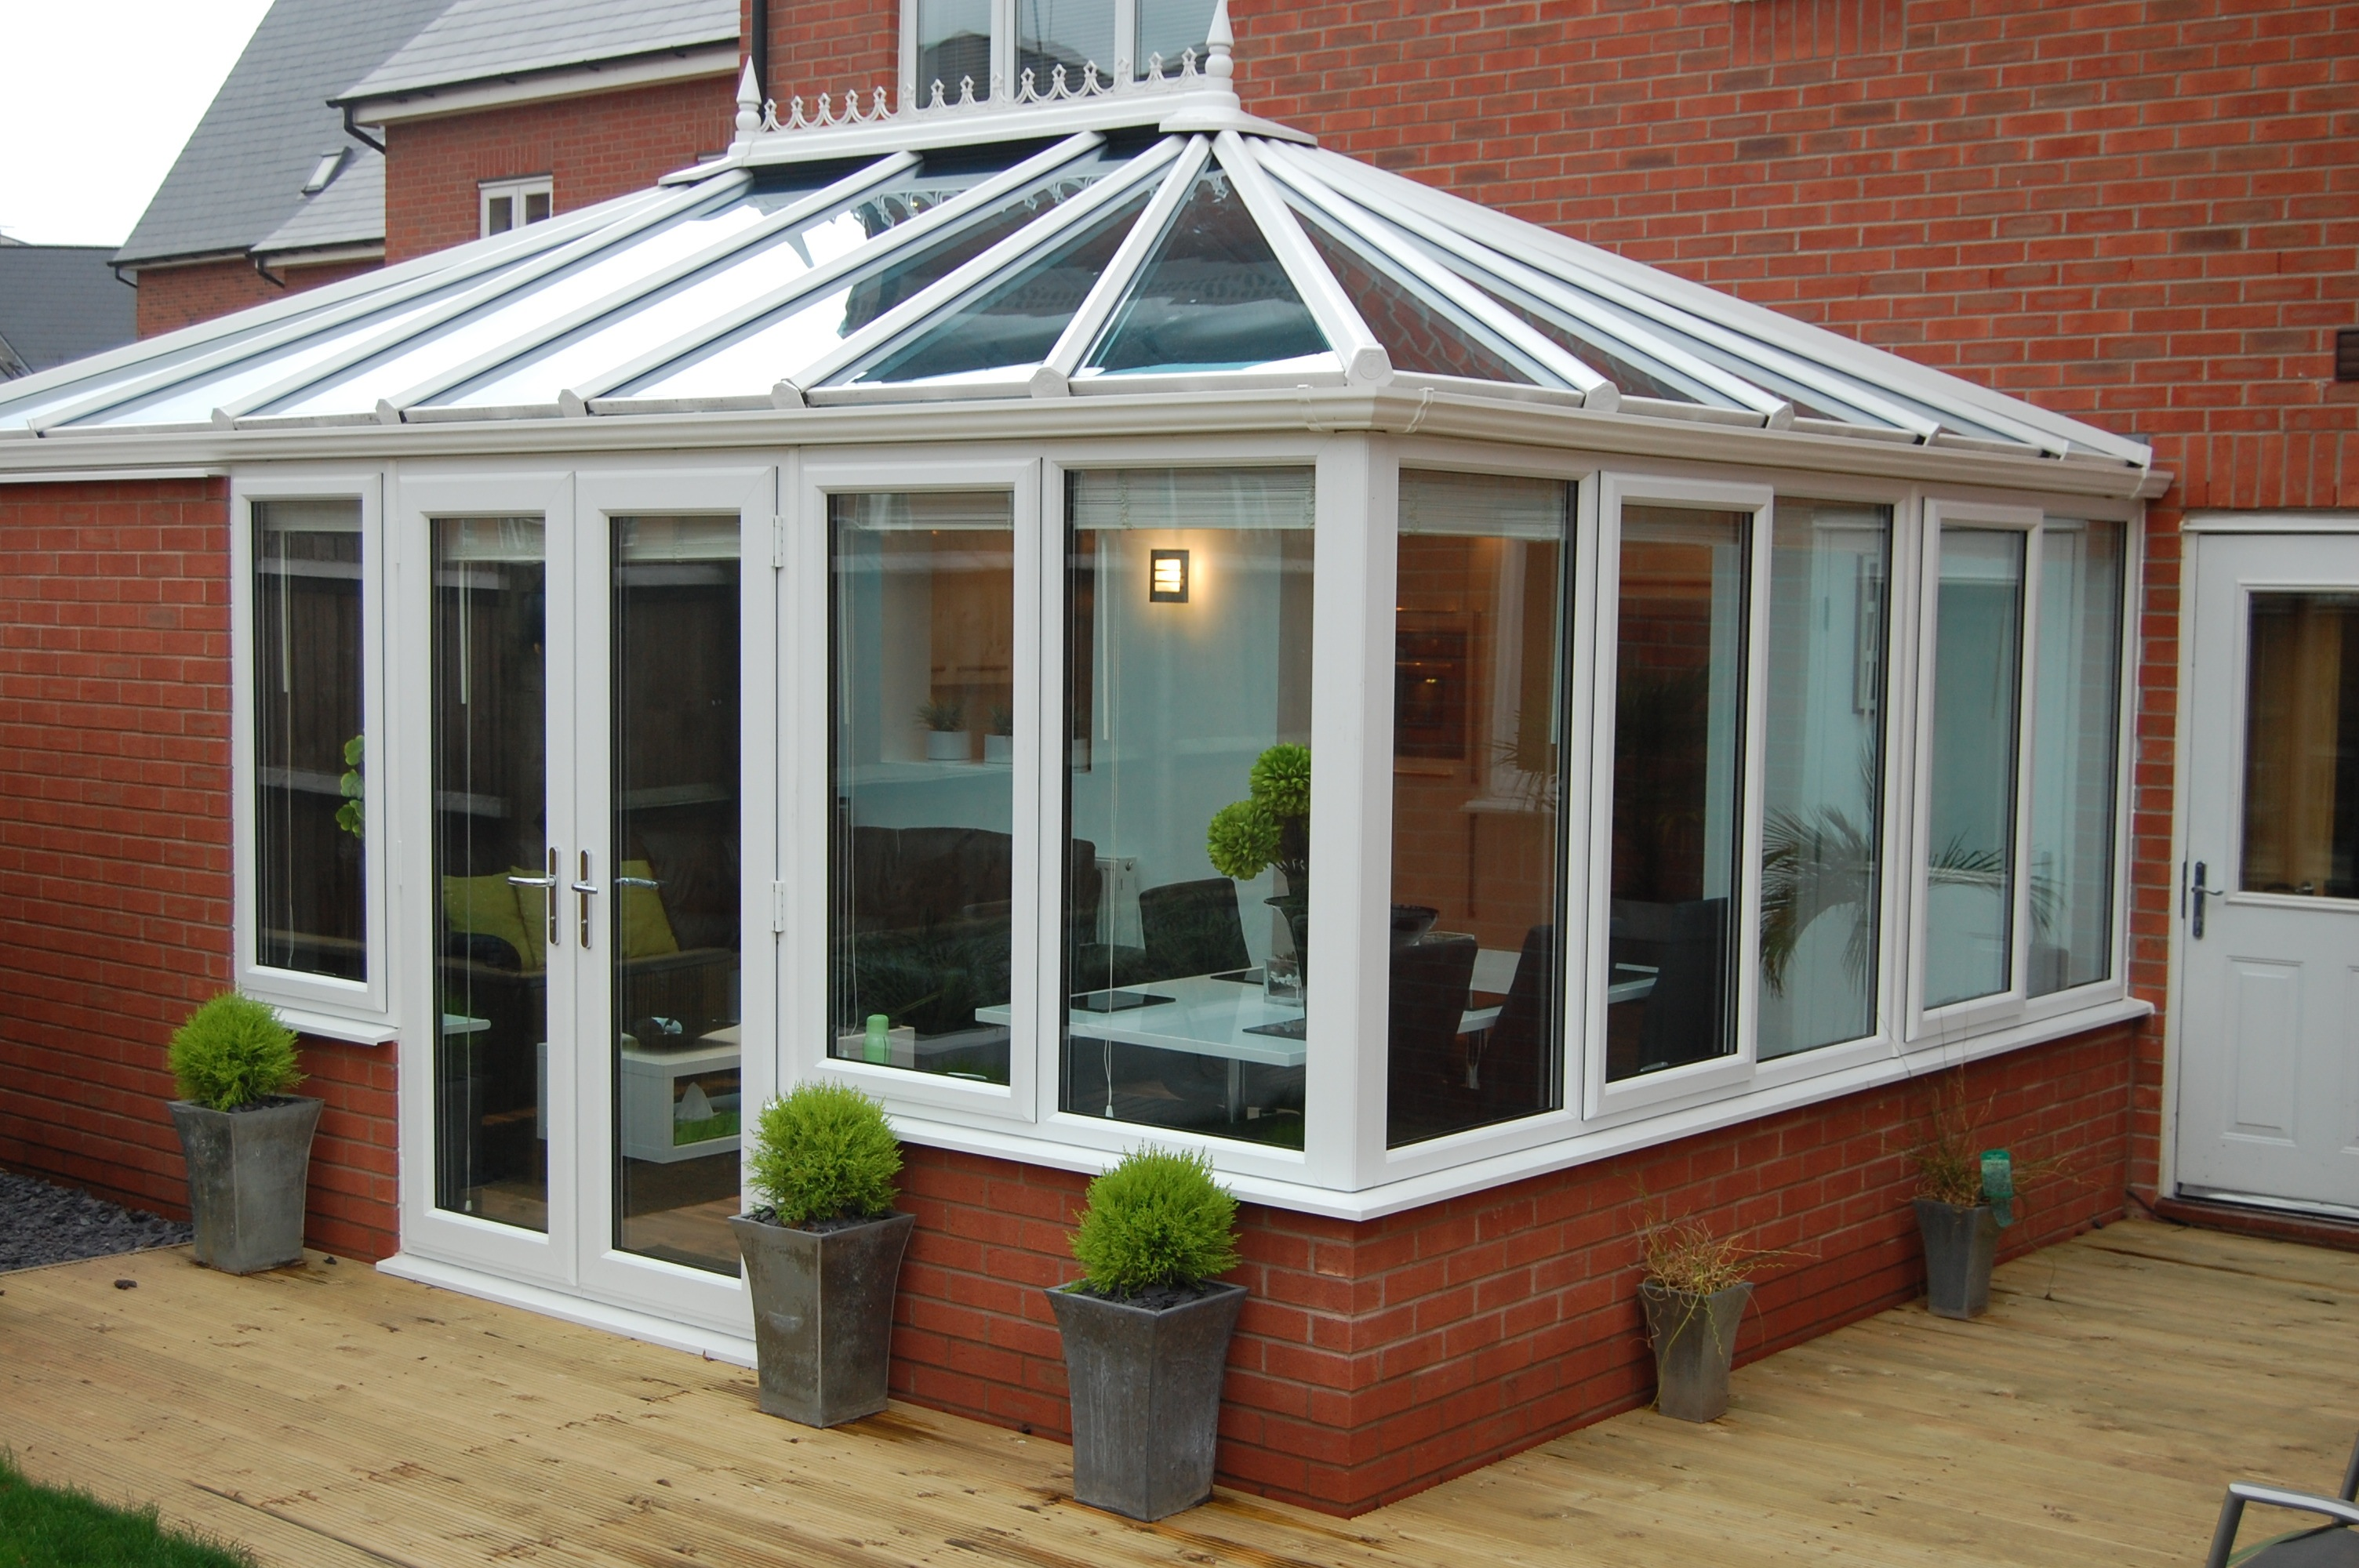 making the conservatory an all year room unite for climate